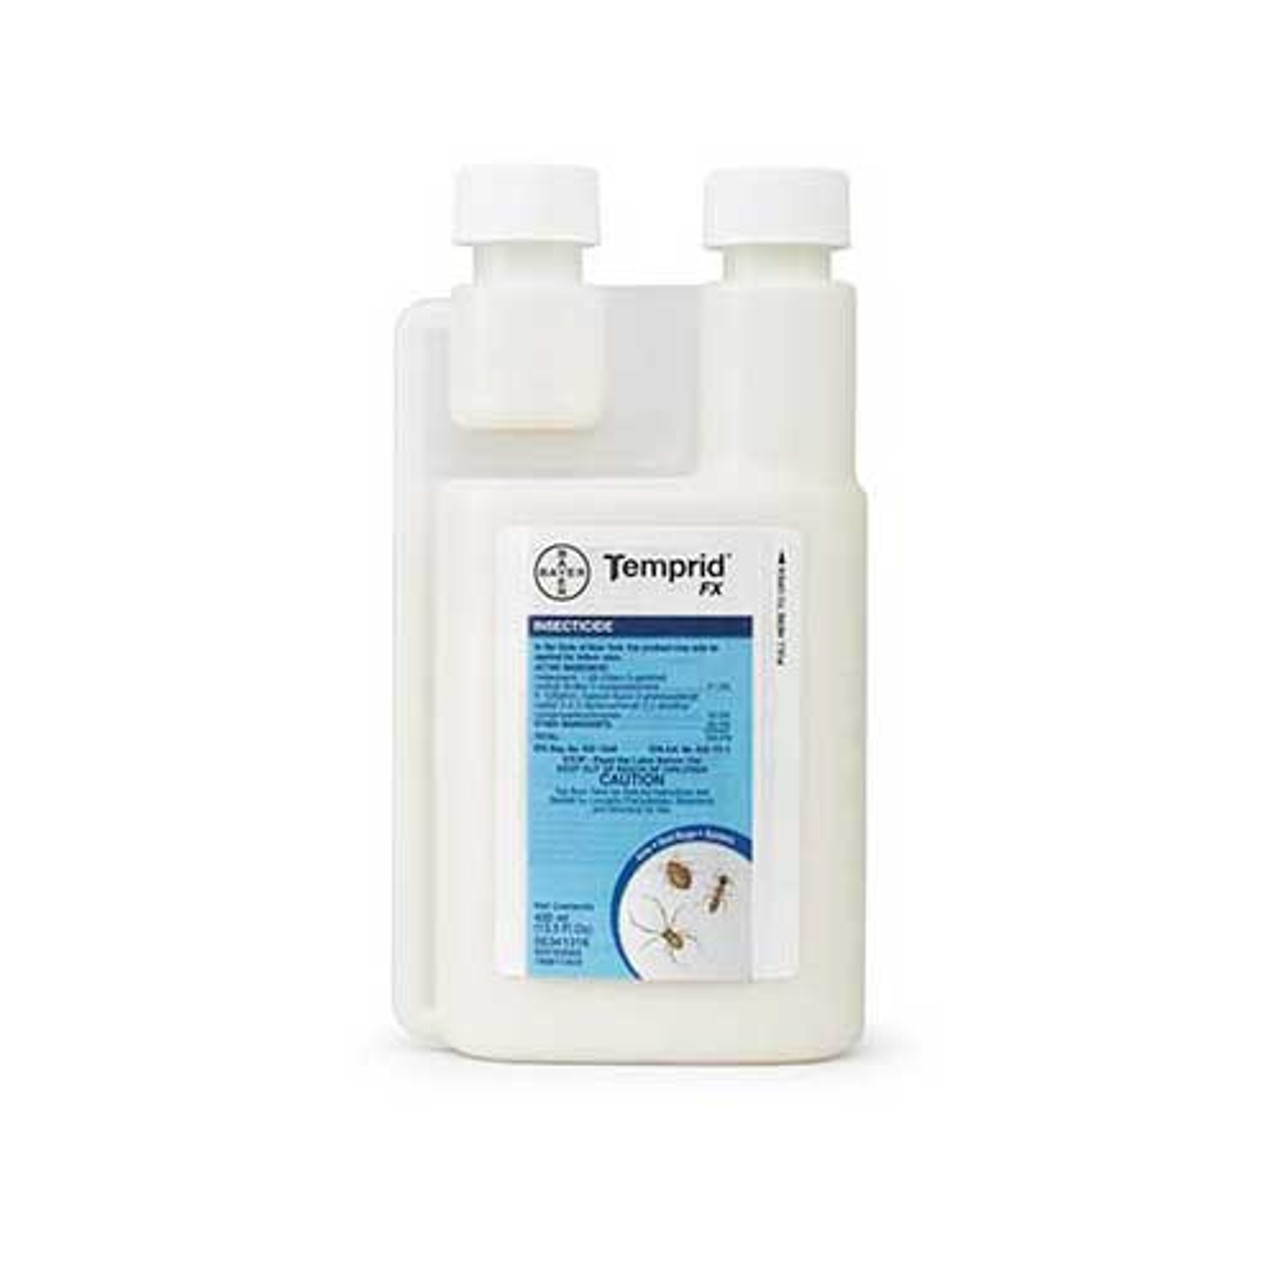 Temprid FX Insecticide 400 ml